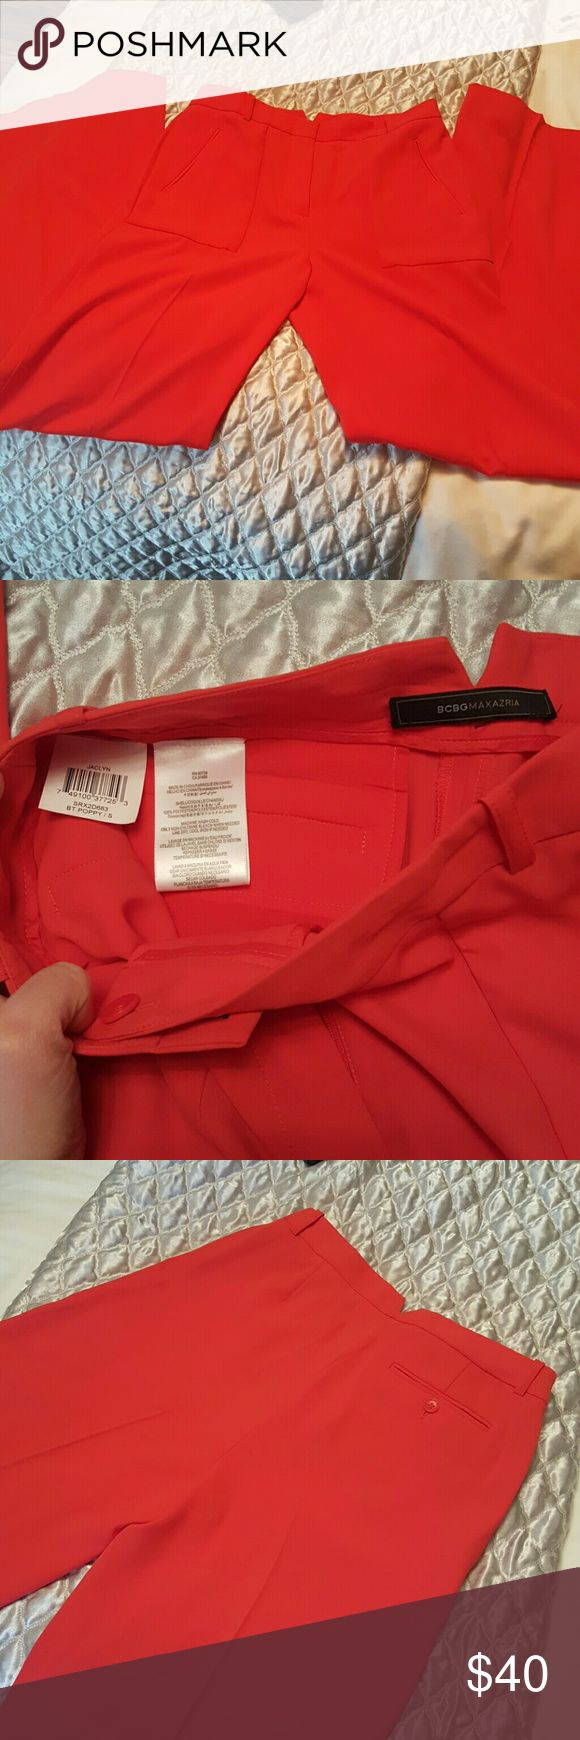 Bcbgmaxazria Jaclyn Wide Leg High Rise Pants Bcbgmaxazria. Style: jaclyn. Color: poppy. Size small. Wide leg high rise fit. So comfy. Lightweight material. Very flattering. Smokefree Environment. BCBGMaxAzria Pants Wide Leg